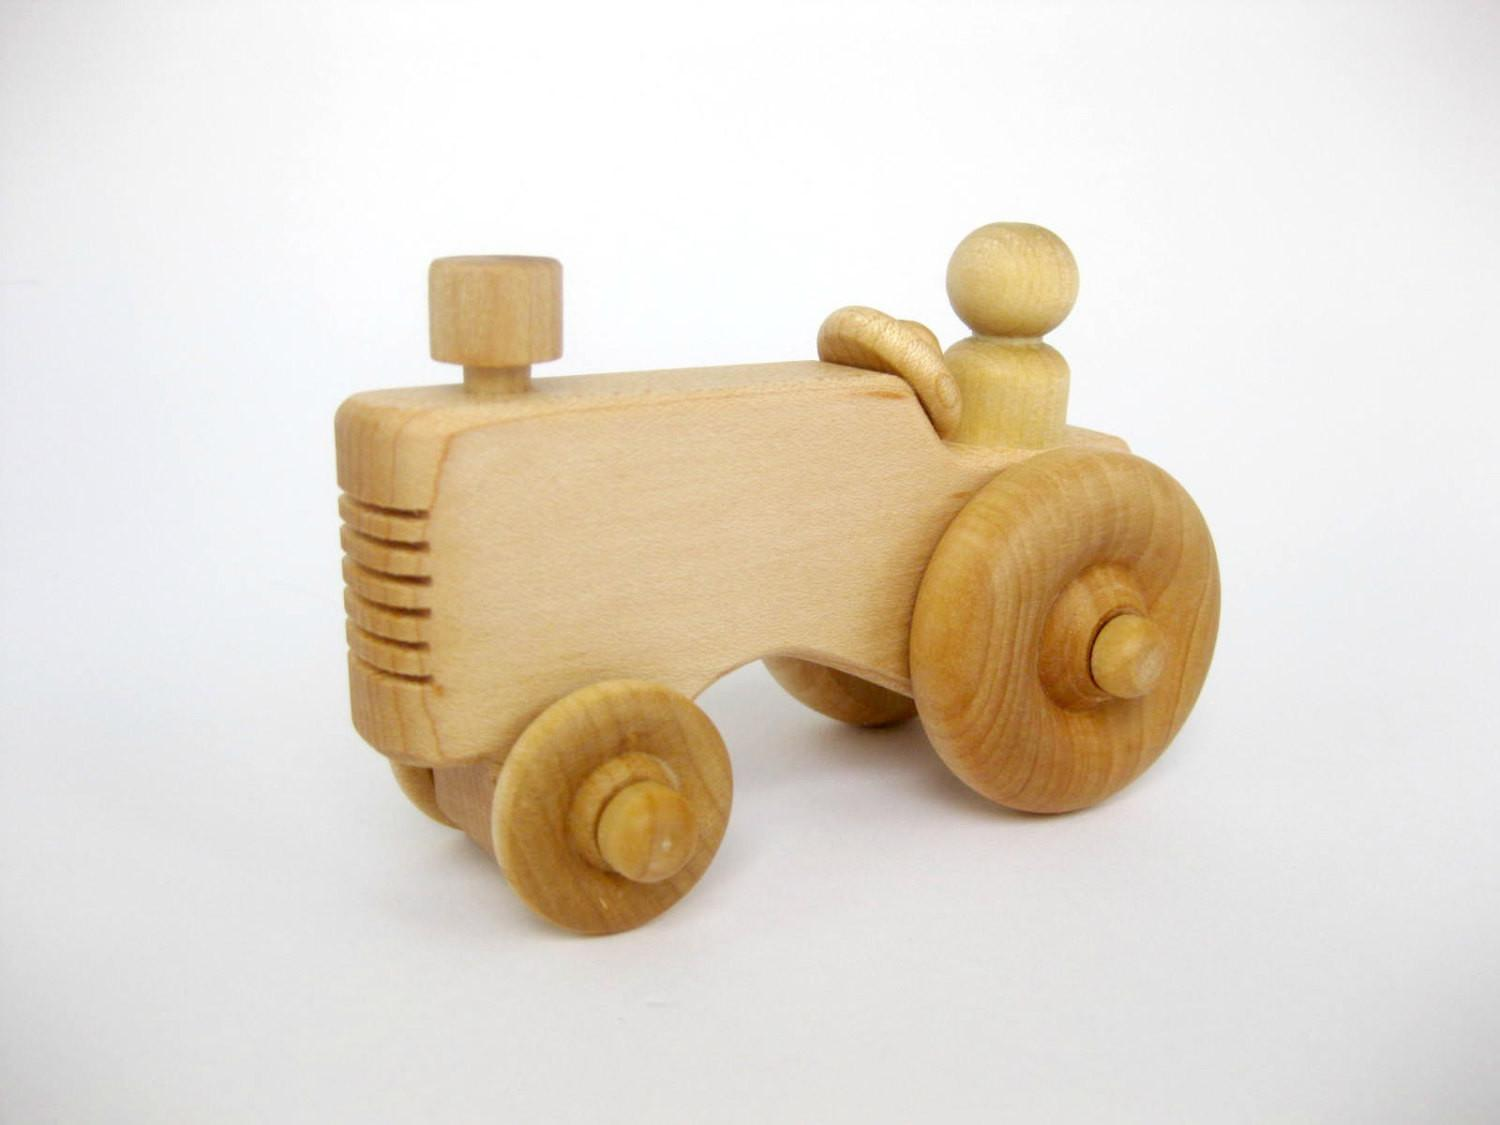 Wooden Toy Farm Tractor Natural Wood